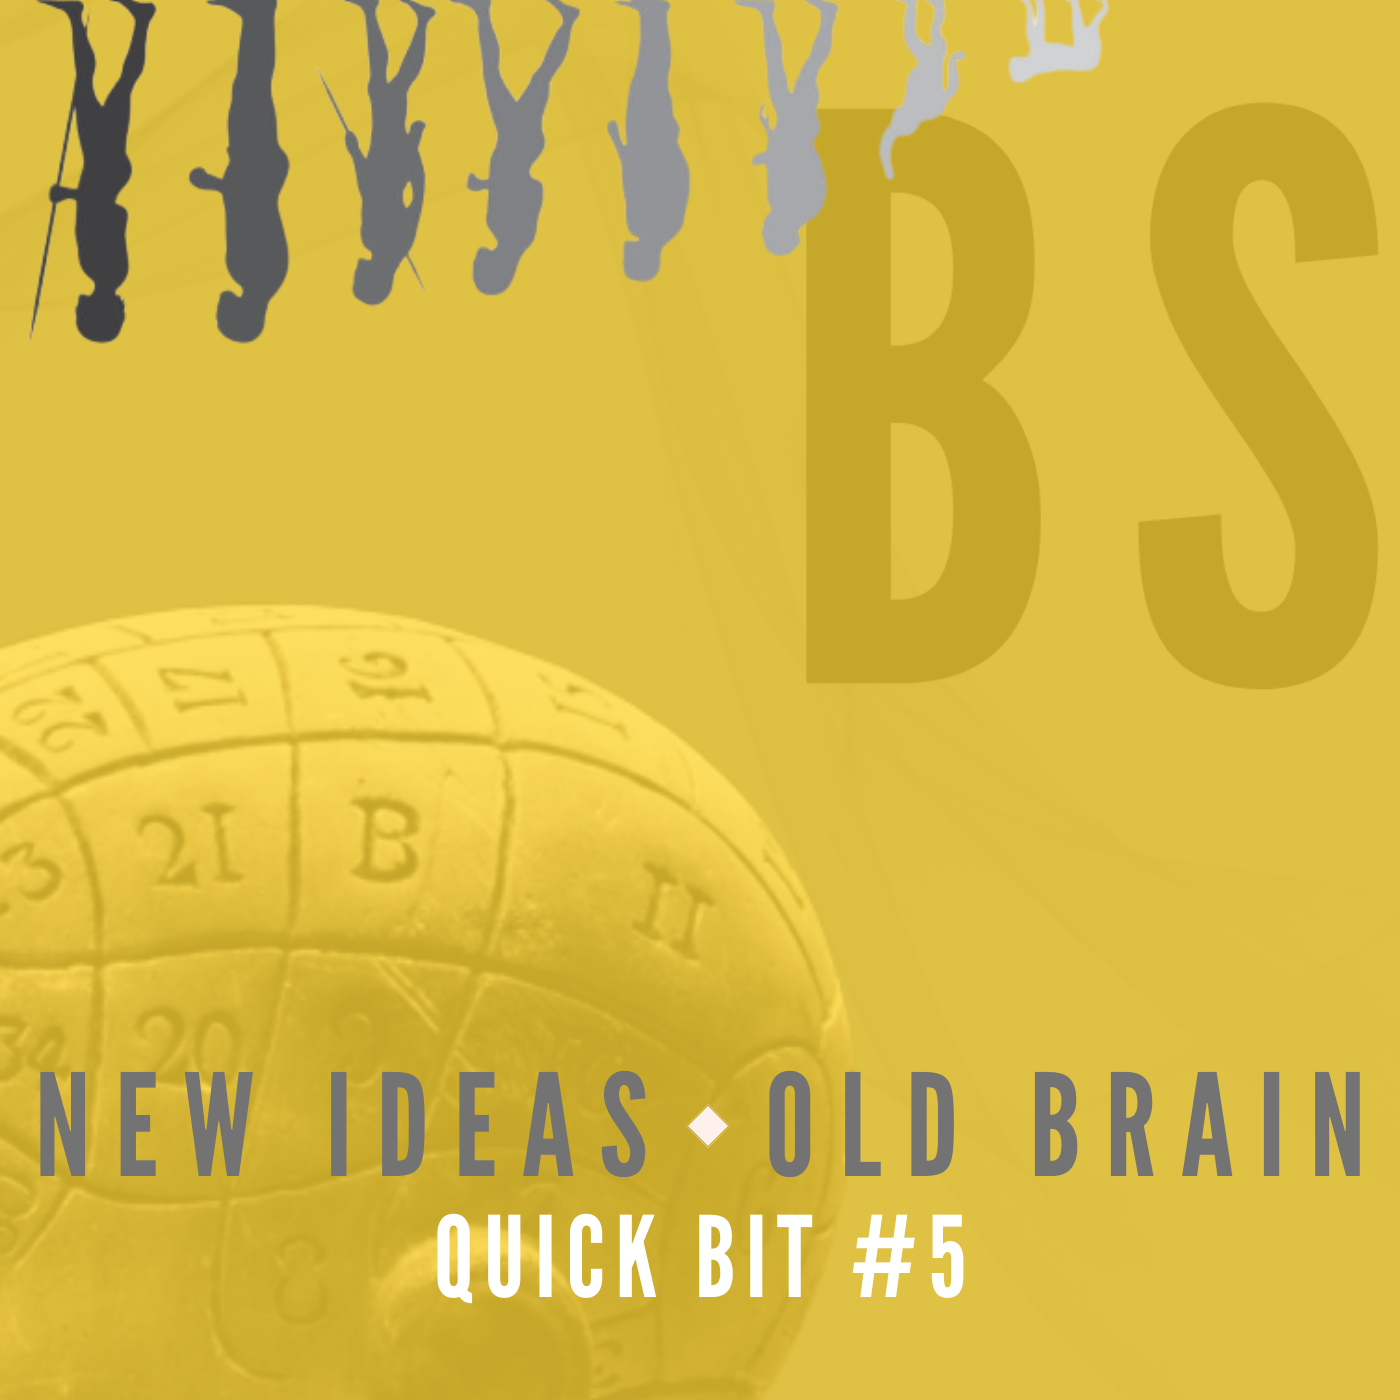 New Ideas, Old Brain Quick Bit #5: Self Versus Other Cultural Considerations and Team Creativity